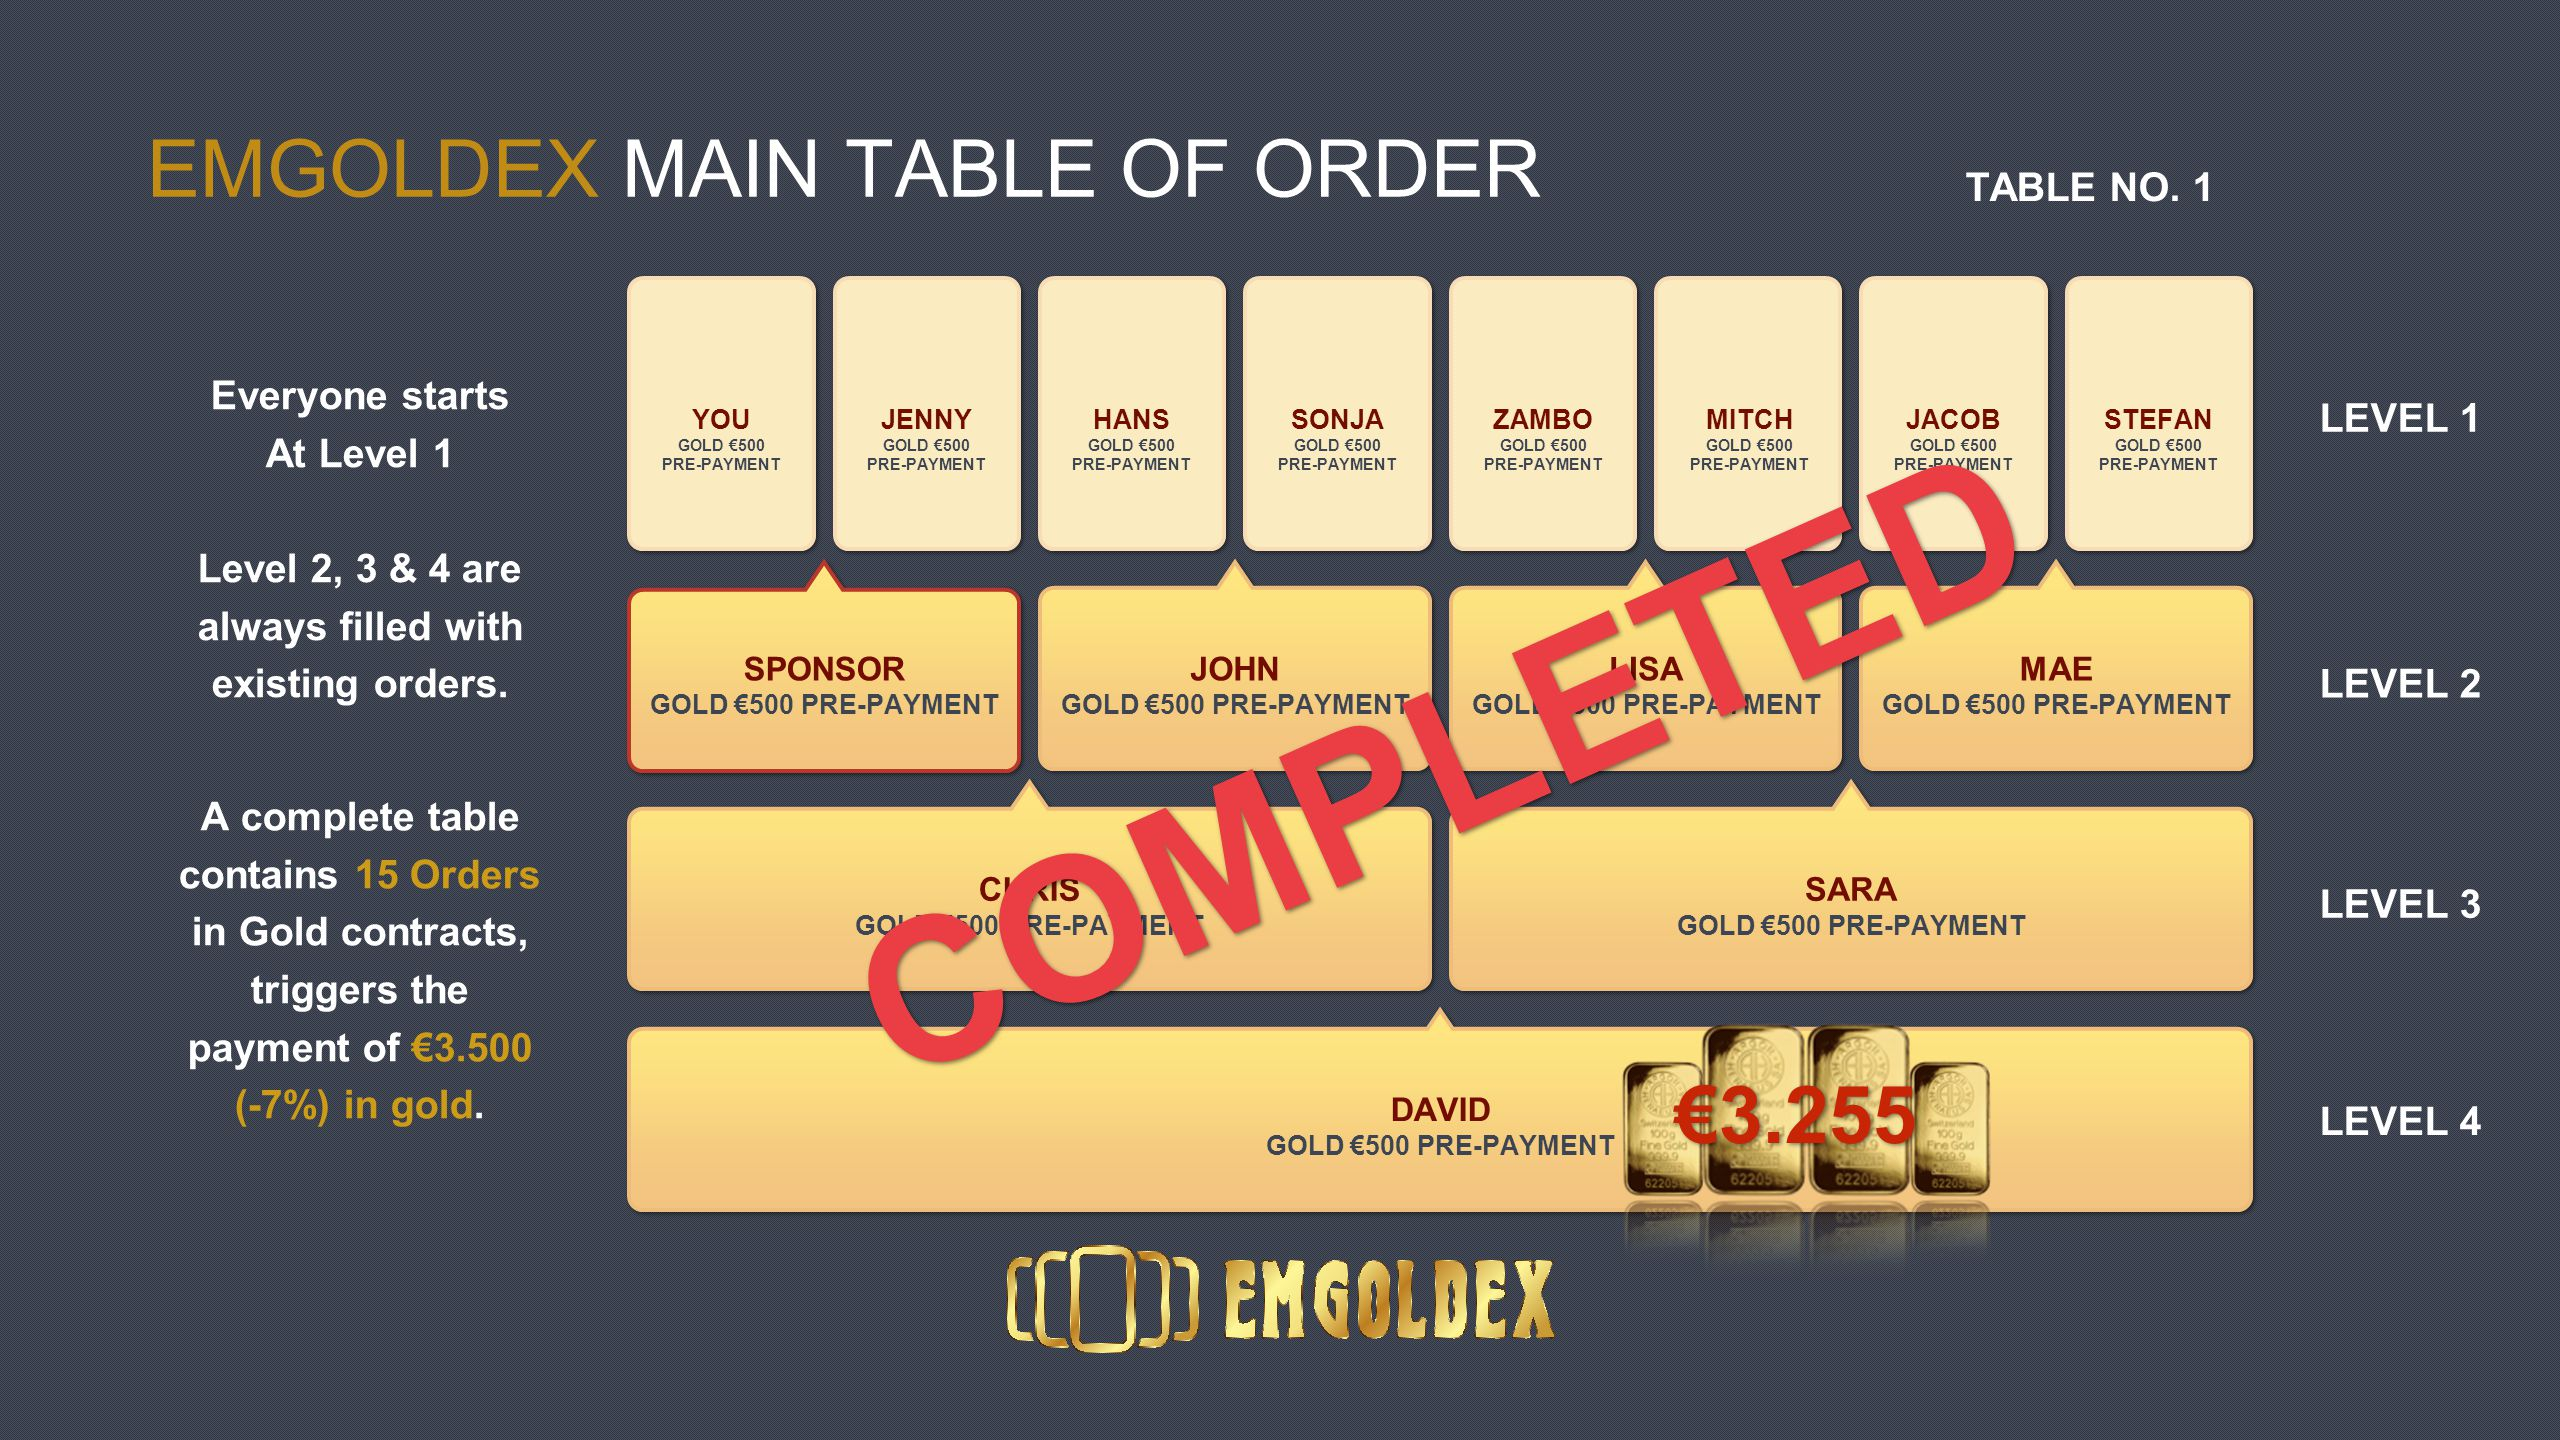 EMGOLDEX MAIN TABLE OF ORDER Everyone starts At Level 1 Level 2, 3 & 4 are always filled with existing orders.